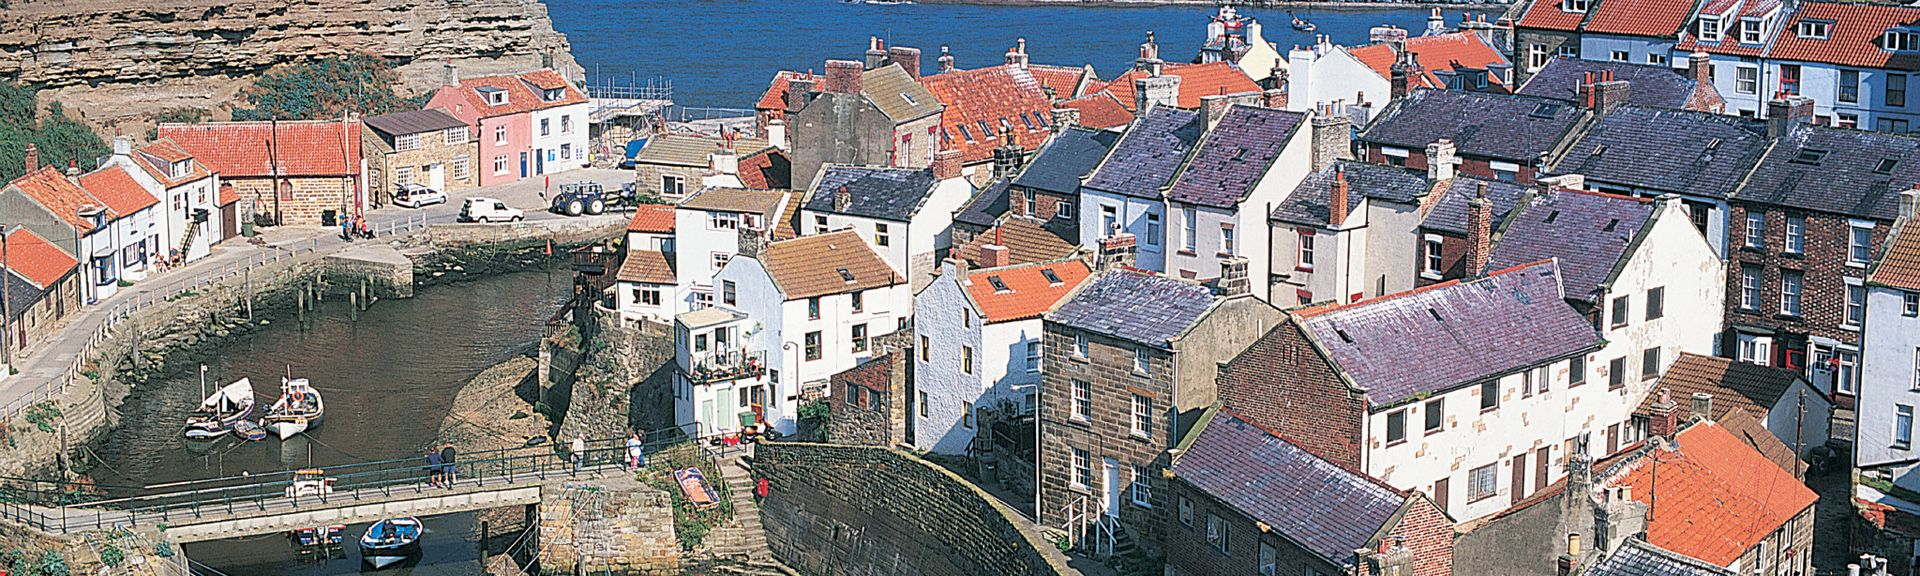 Staithes, Saltburn-by-the-Sea, England, United Kingdom